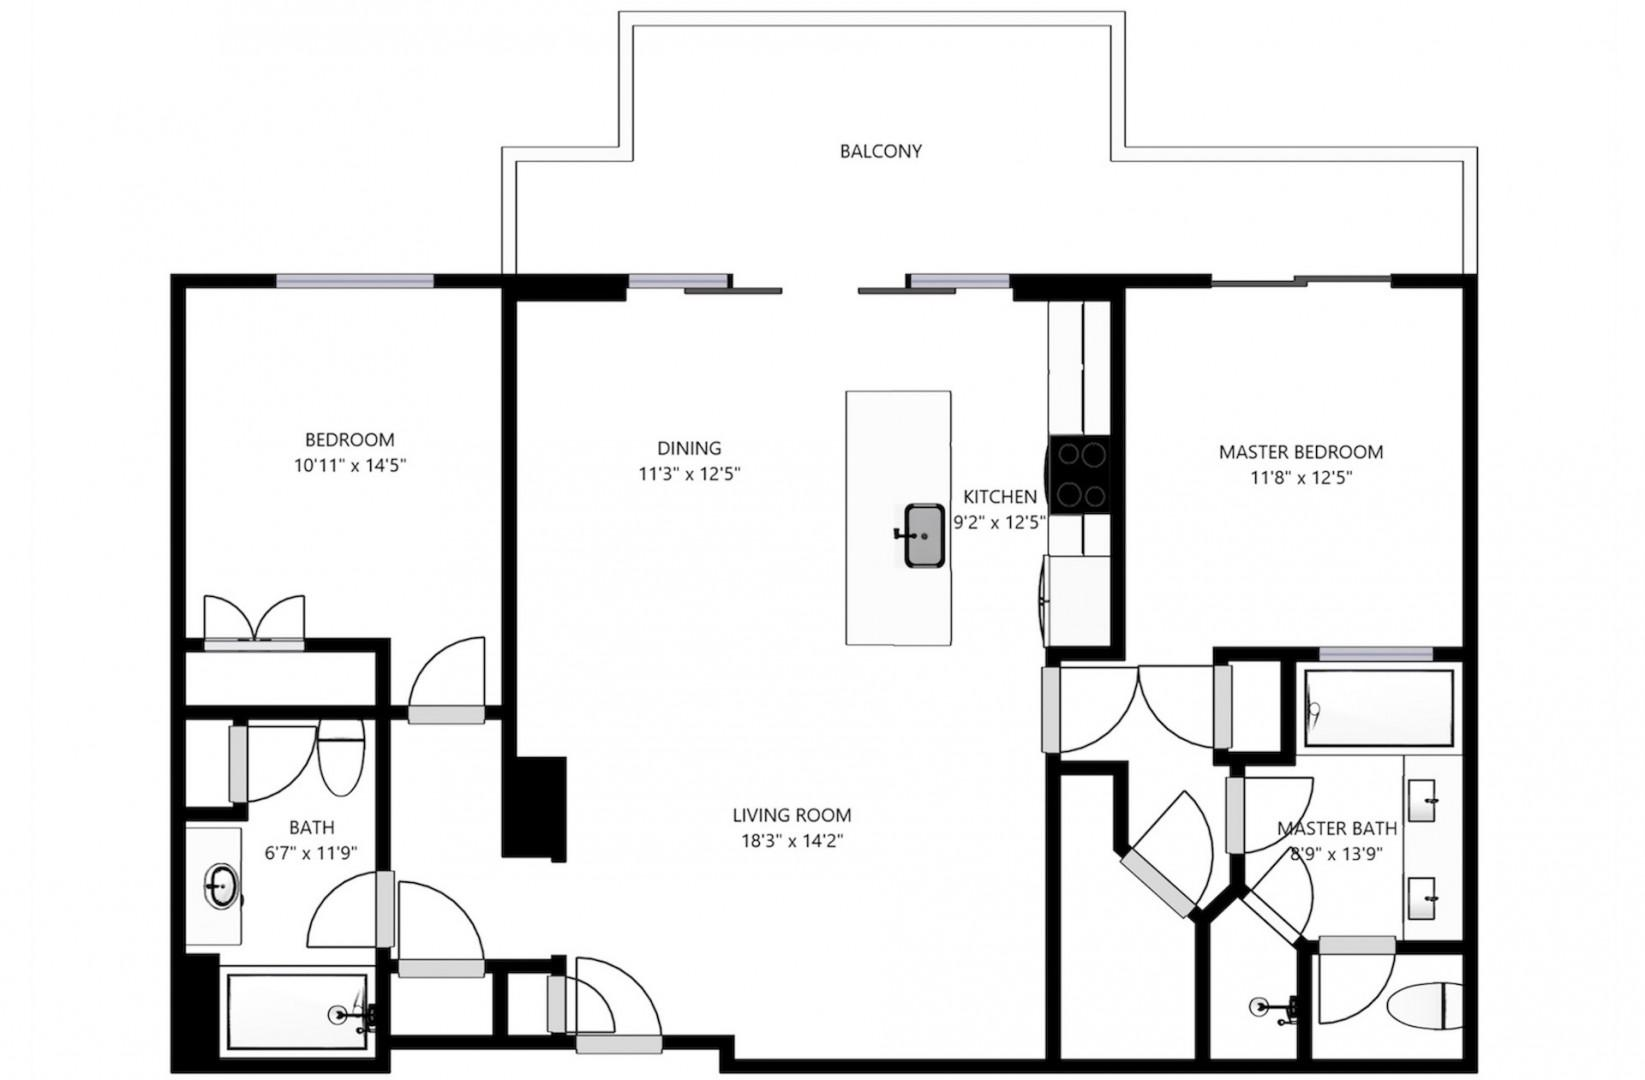 Floor plan details with all bedrooms and living areas featuring beach-facing views.